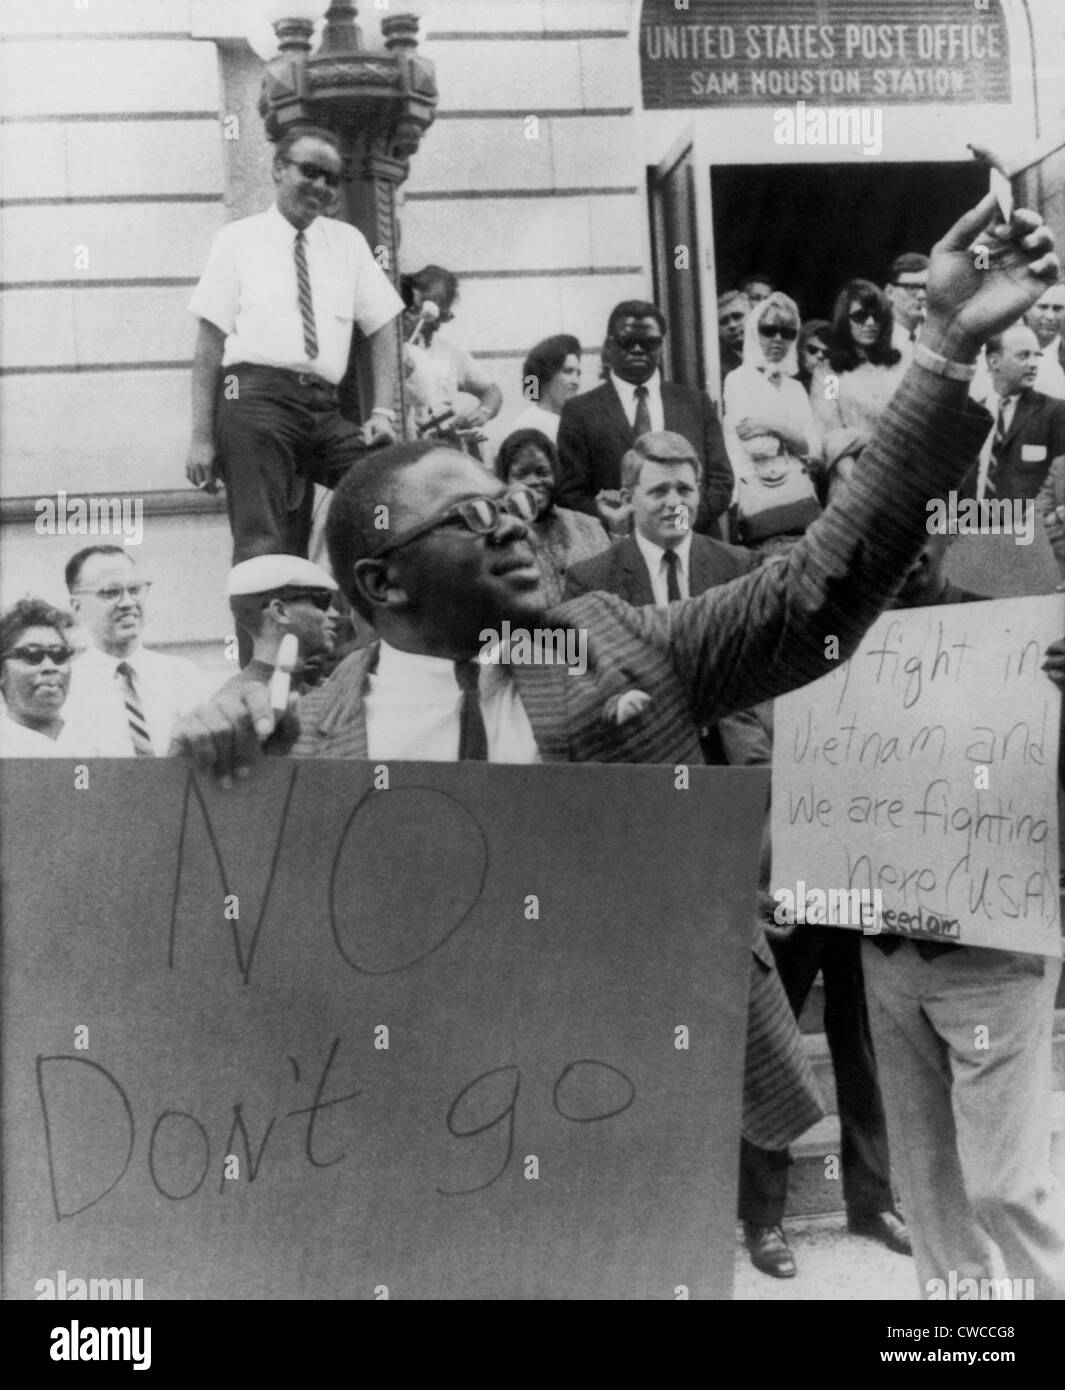 Supporters of Muhammad Ali, formerly Cassius Clay, cheer on a man burning draft card in Houston, Texas. In 1967, - Stock Image